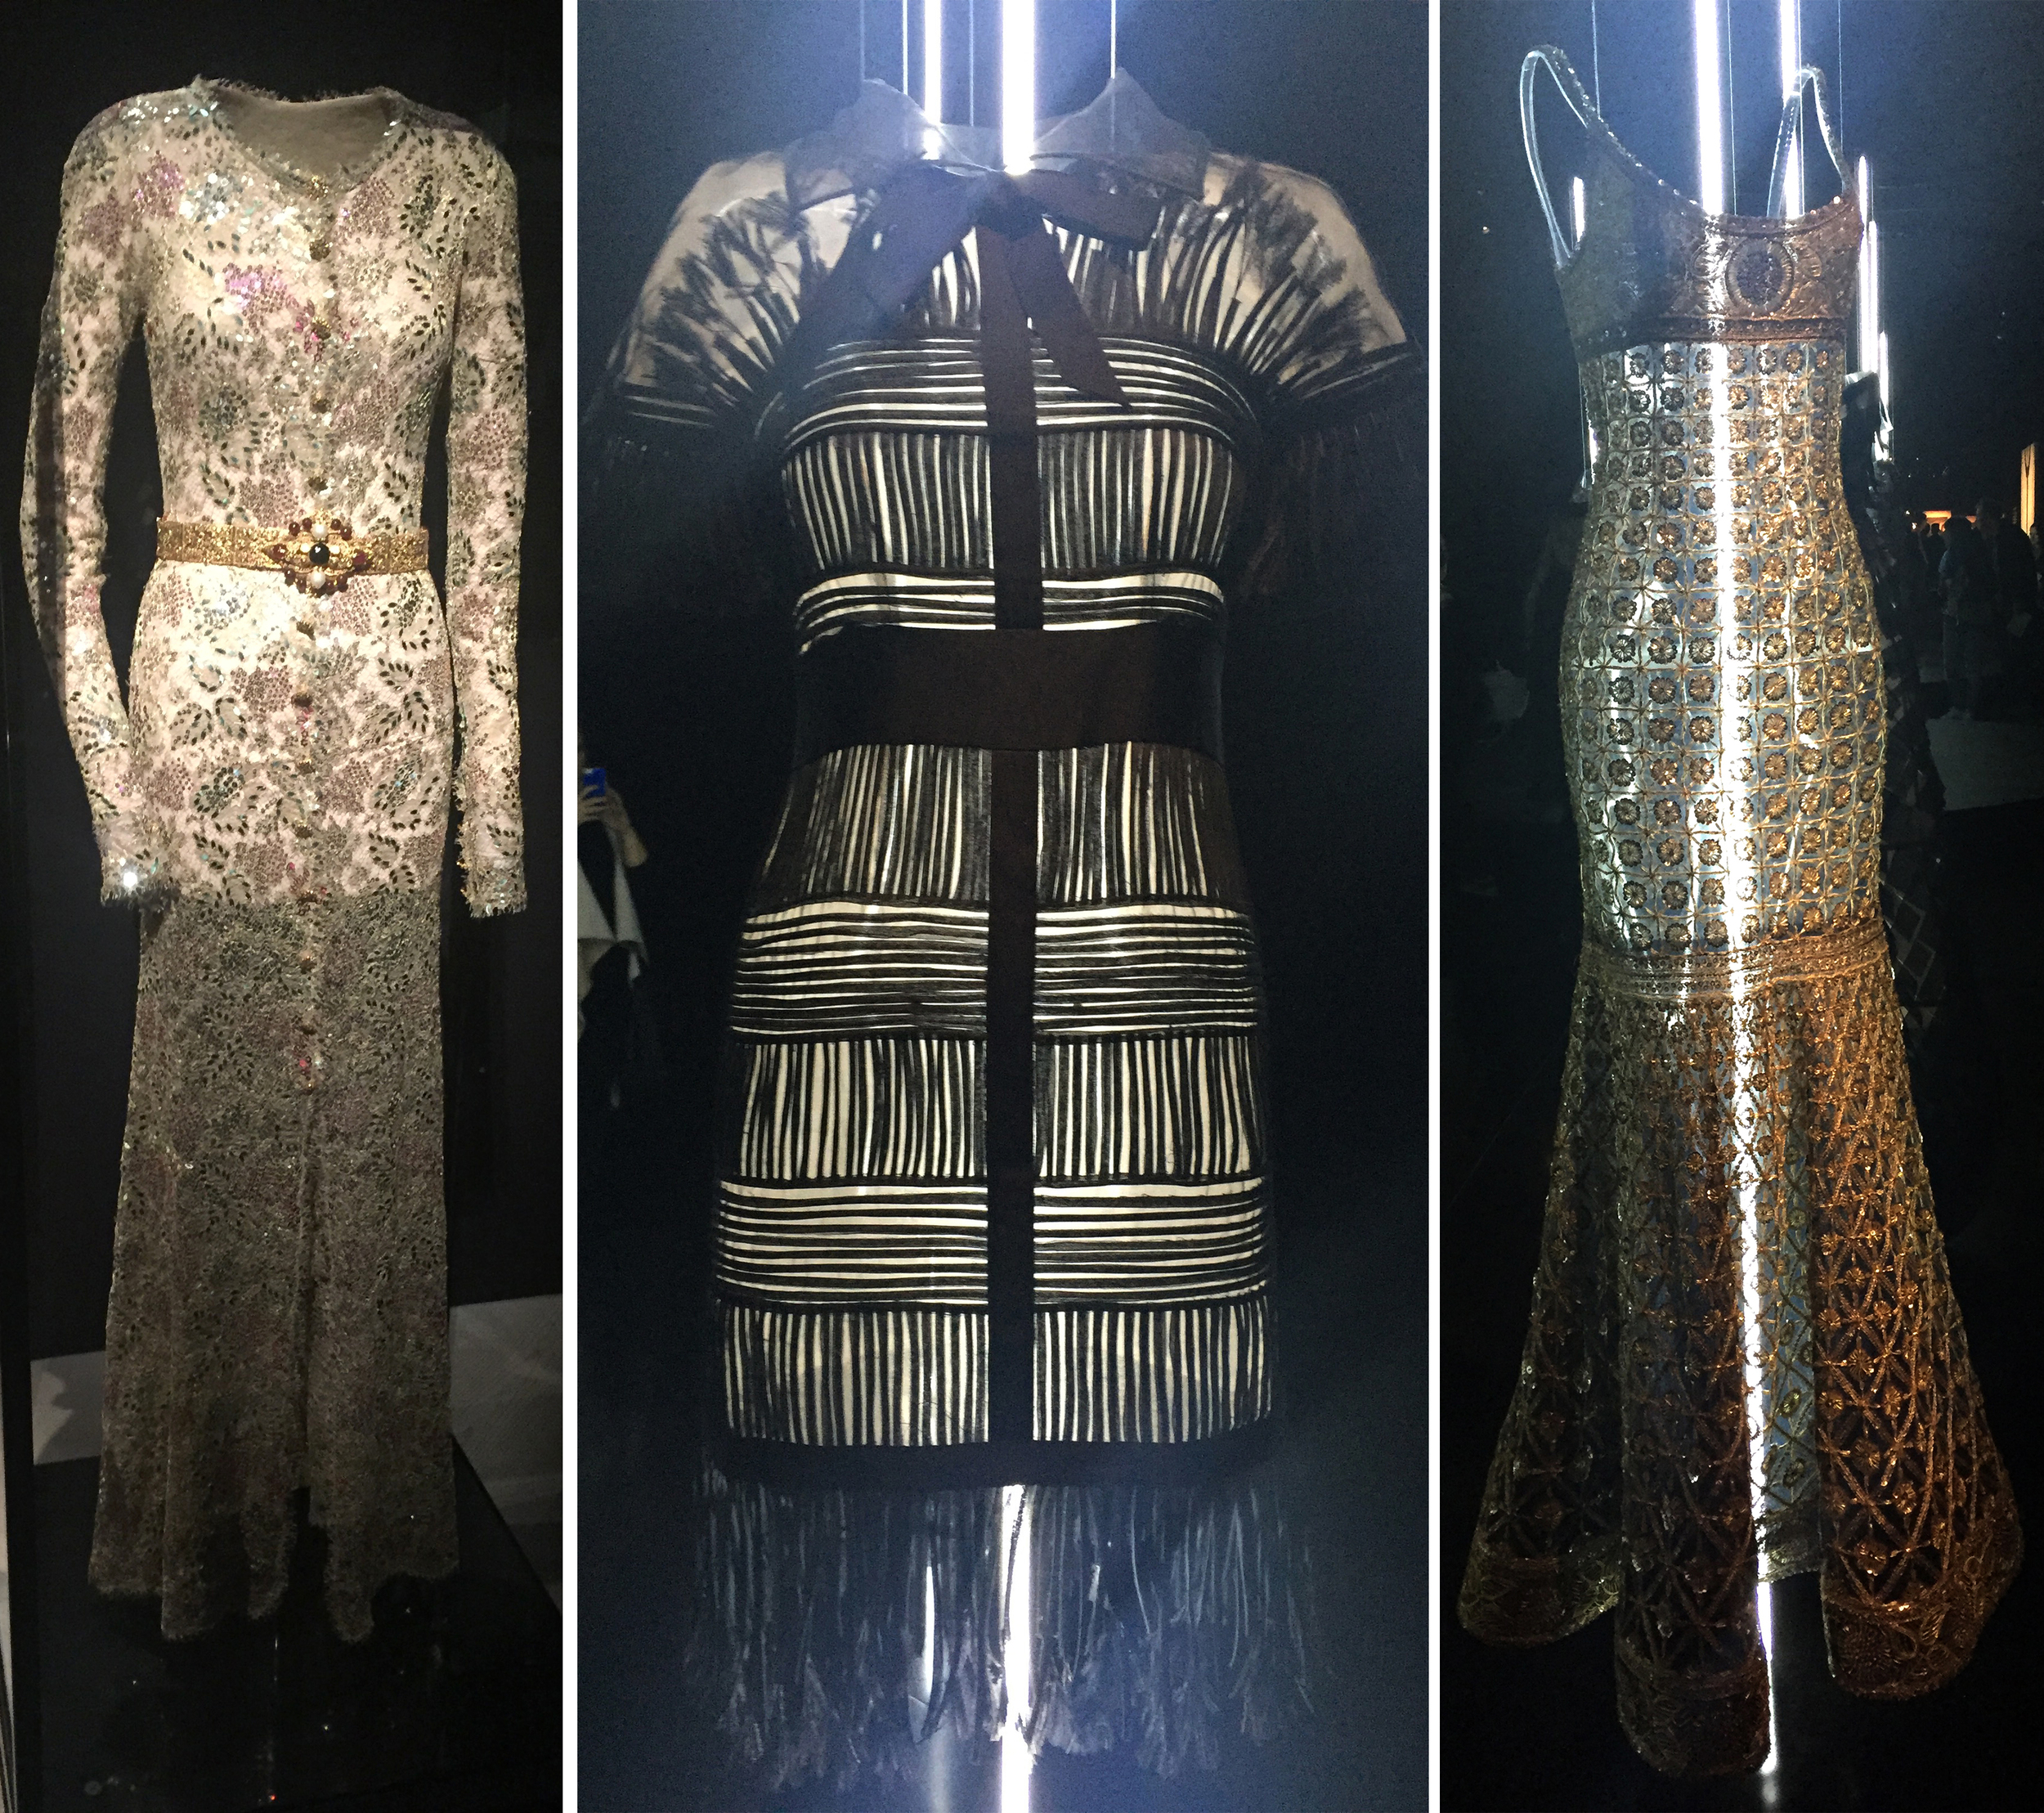 Some of my favourite couture dresses from the exhibition. The dresses were lit internally which showed the tiniest detailing.